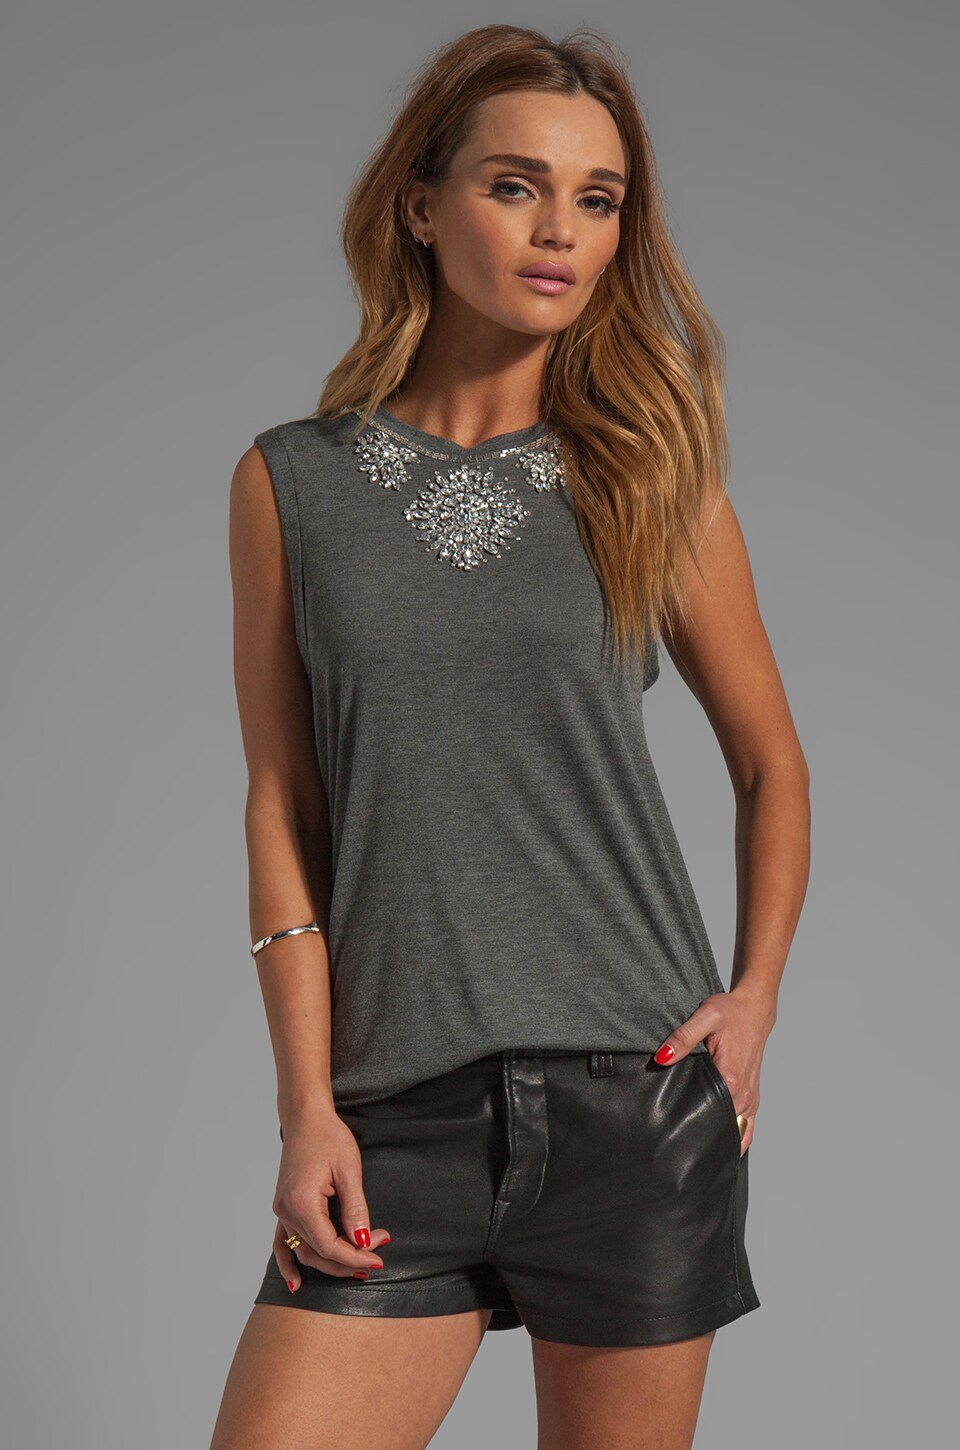 Haute Hippie Embellished Muscle Tee in Charcoal Heather Grey